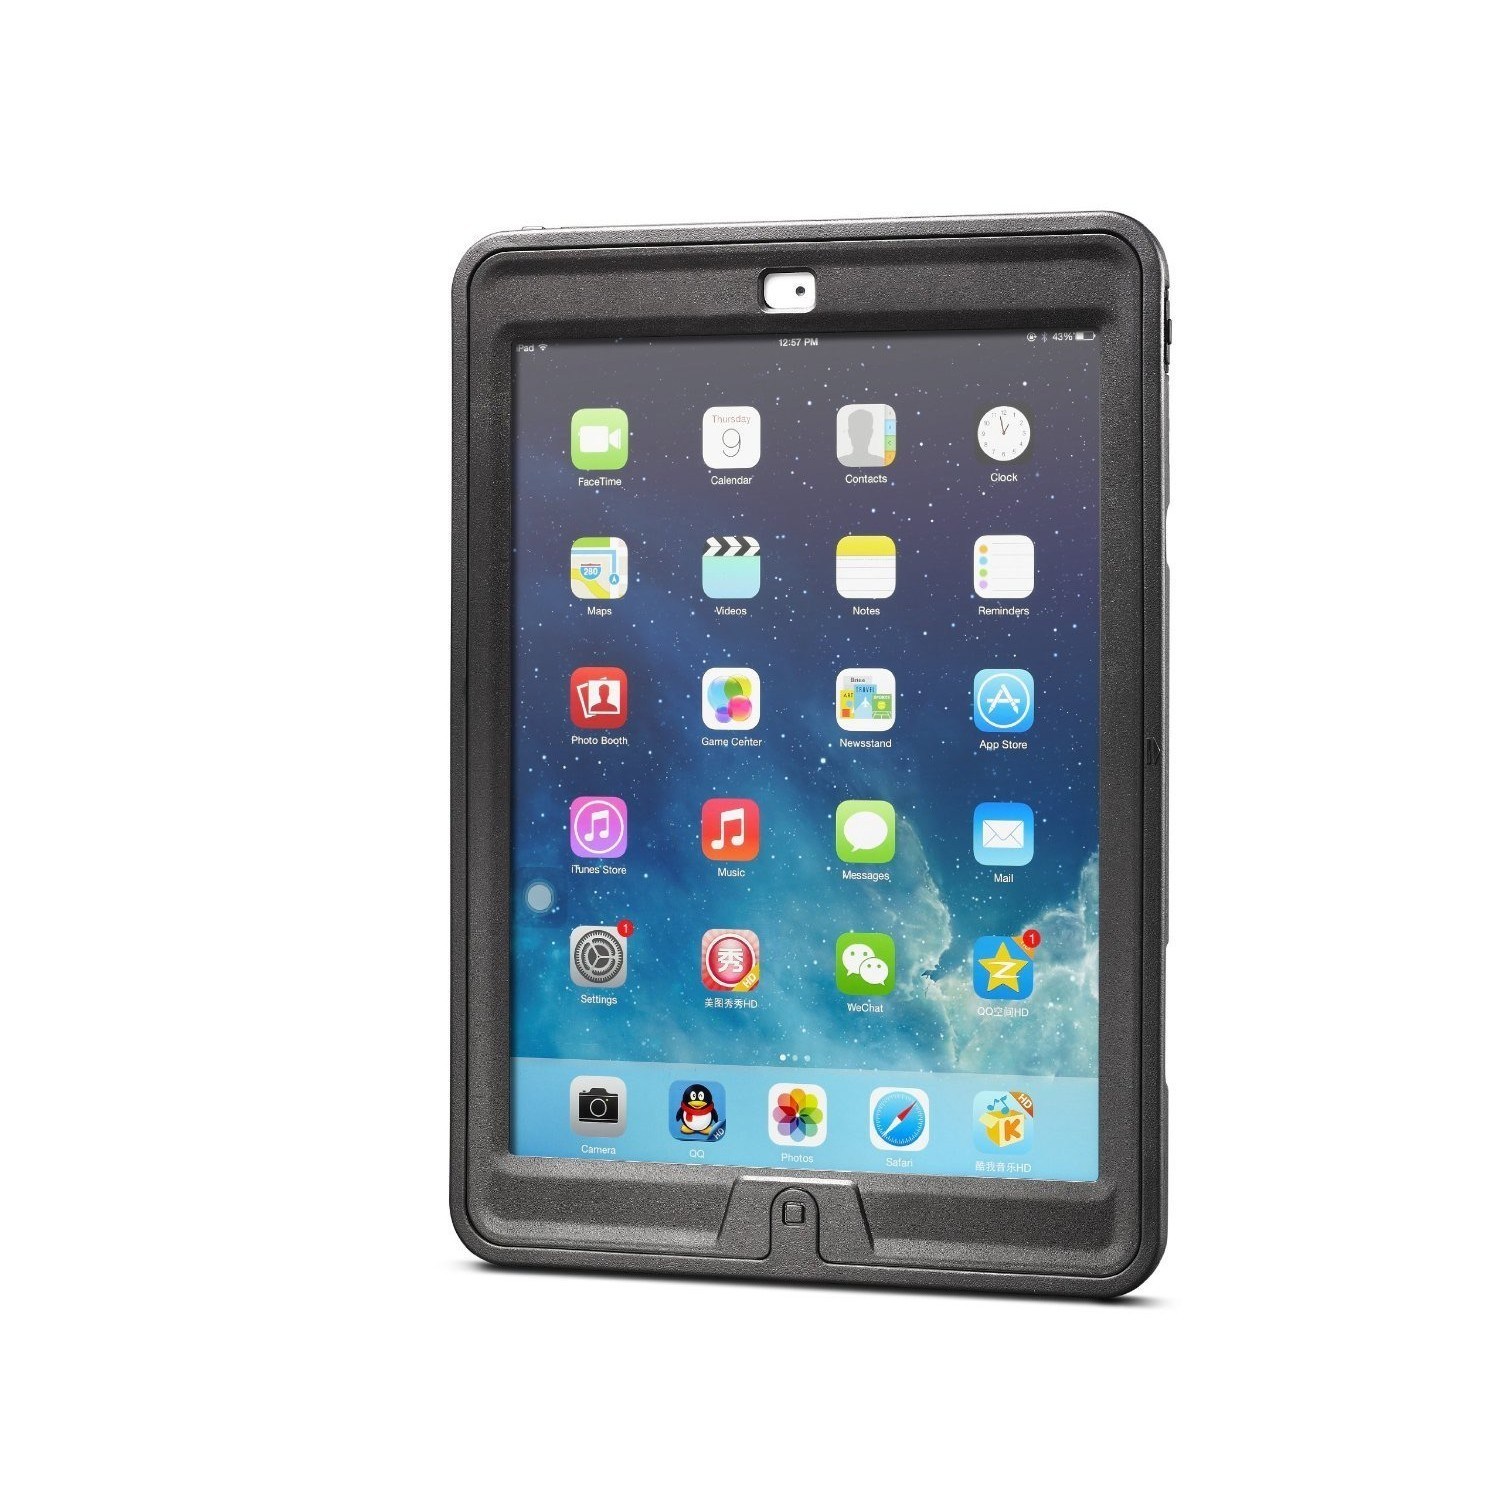 New Trent iPad 9.7 Case For iPad 2018 (6th gen)/ 2017 (5th gen), iPad Air 2 / iPad Air, iPad Pro 9.7 Heavy Duty Gladius Full-Body Rugged Protective Case with Built-in Screen Protector & Dual Layer Design, NT611GR